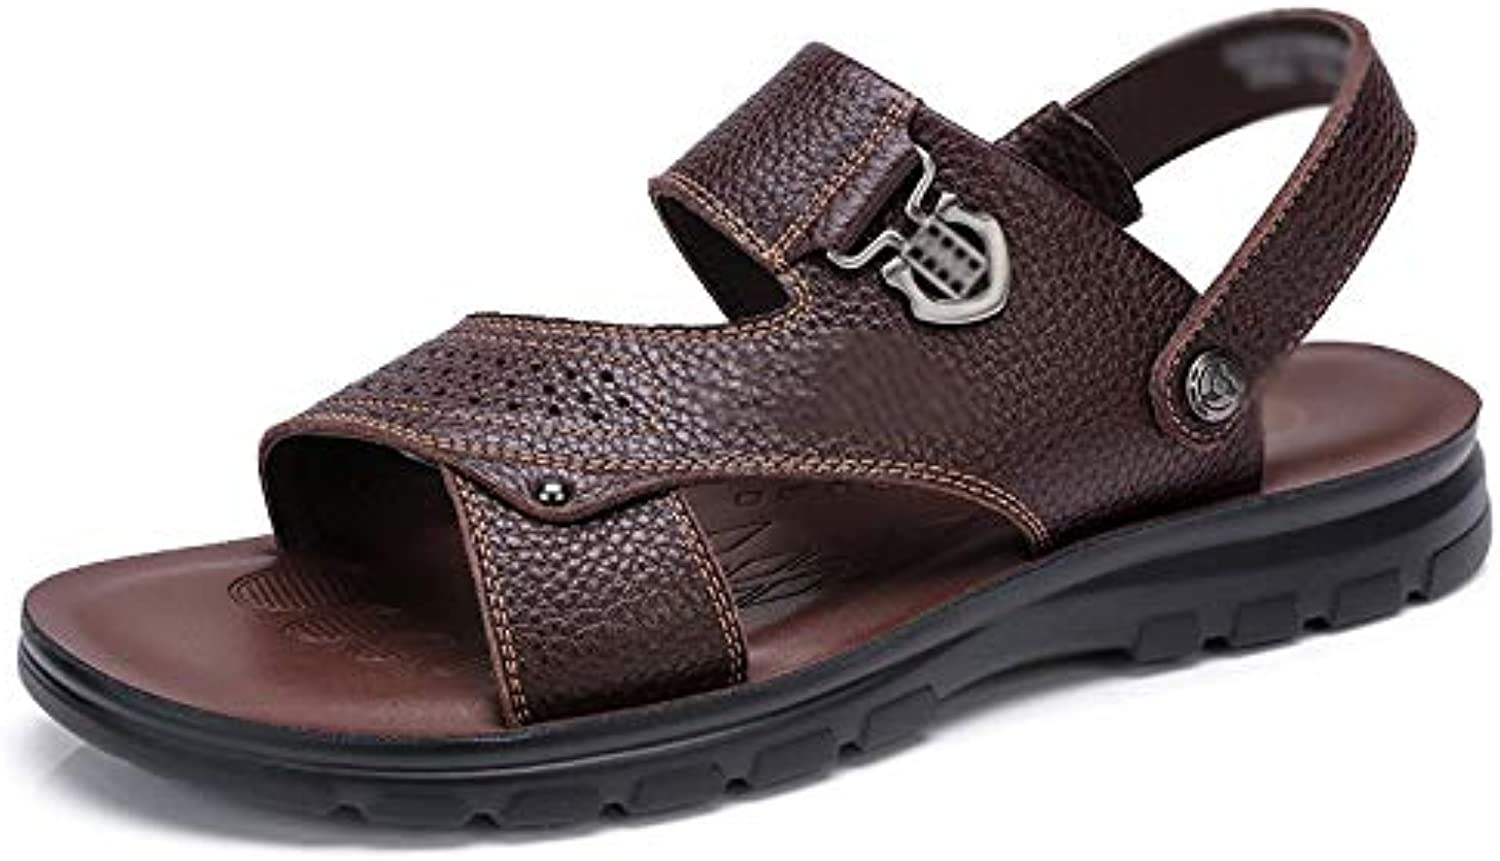 Wthfwm Sandals for Men Men's Open Toe Slipper Slip On Style Genuine Leather Ankle Strap Sandals Outdoor Sports Beach shoes adjustable buckle